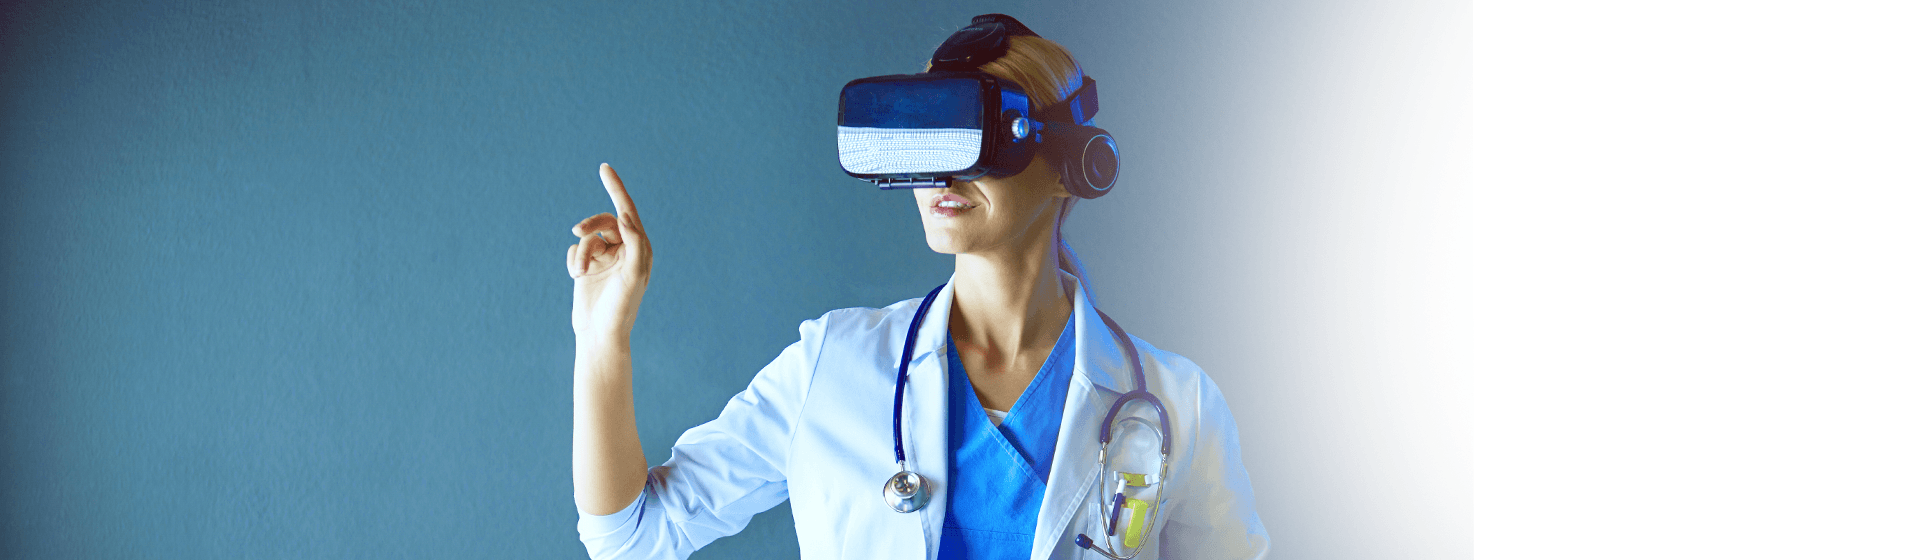 VR Training Program Case Study: Aggressive Behavior De-Escalation At CHRISTUS Health